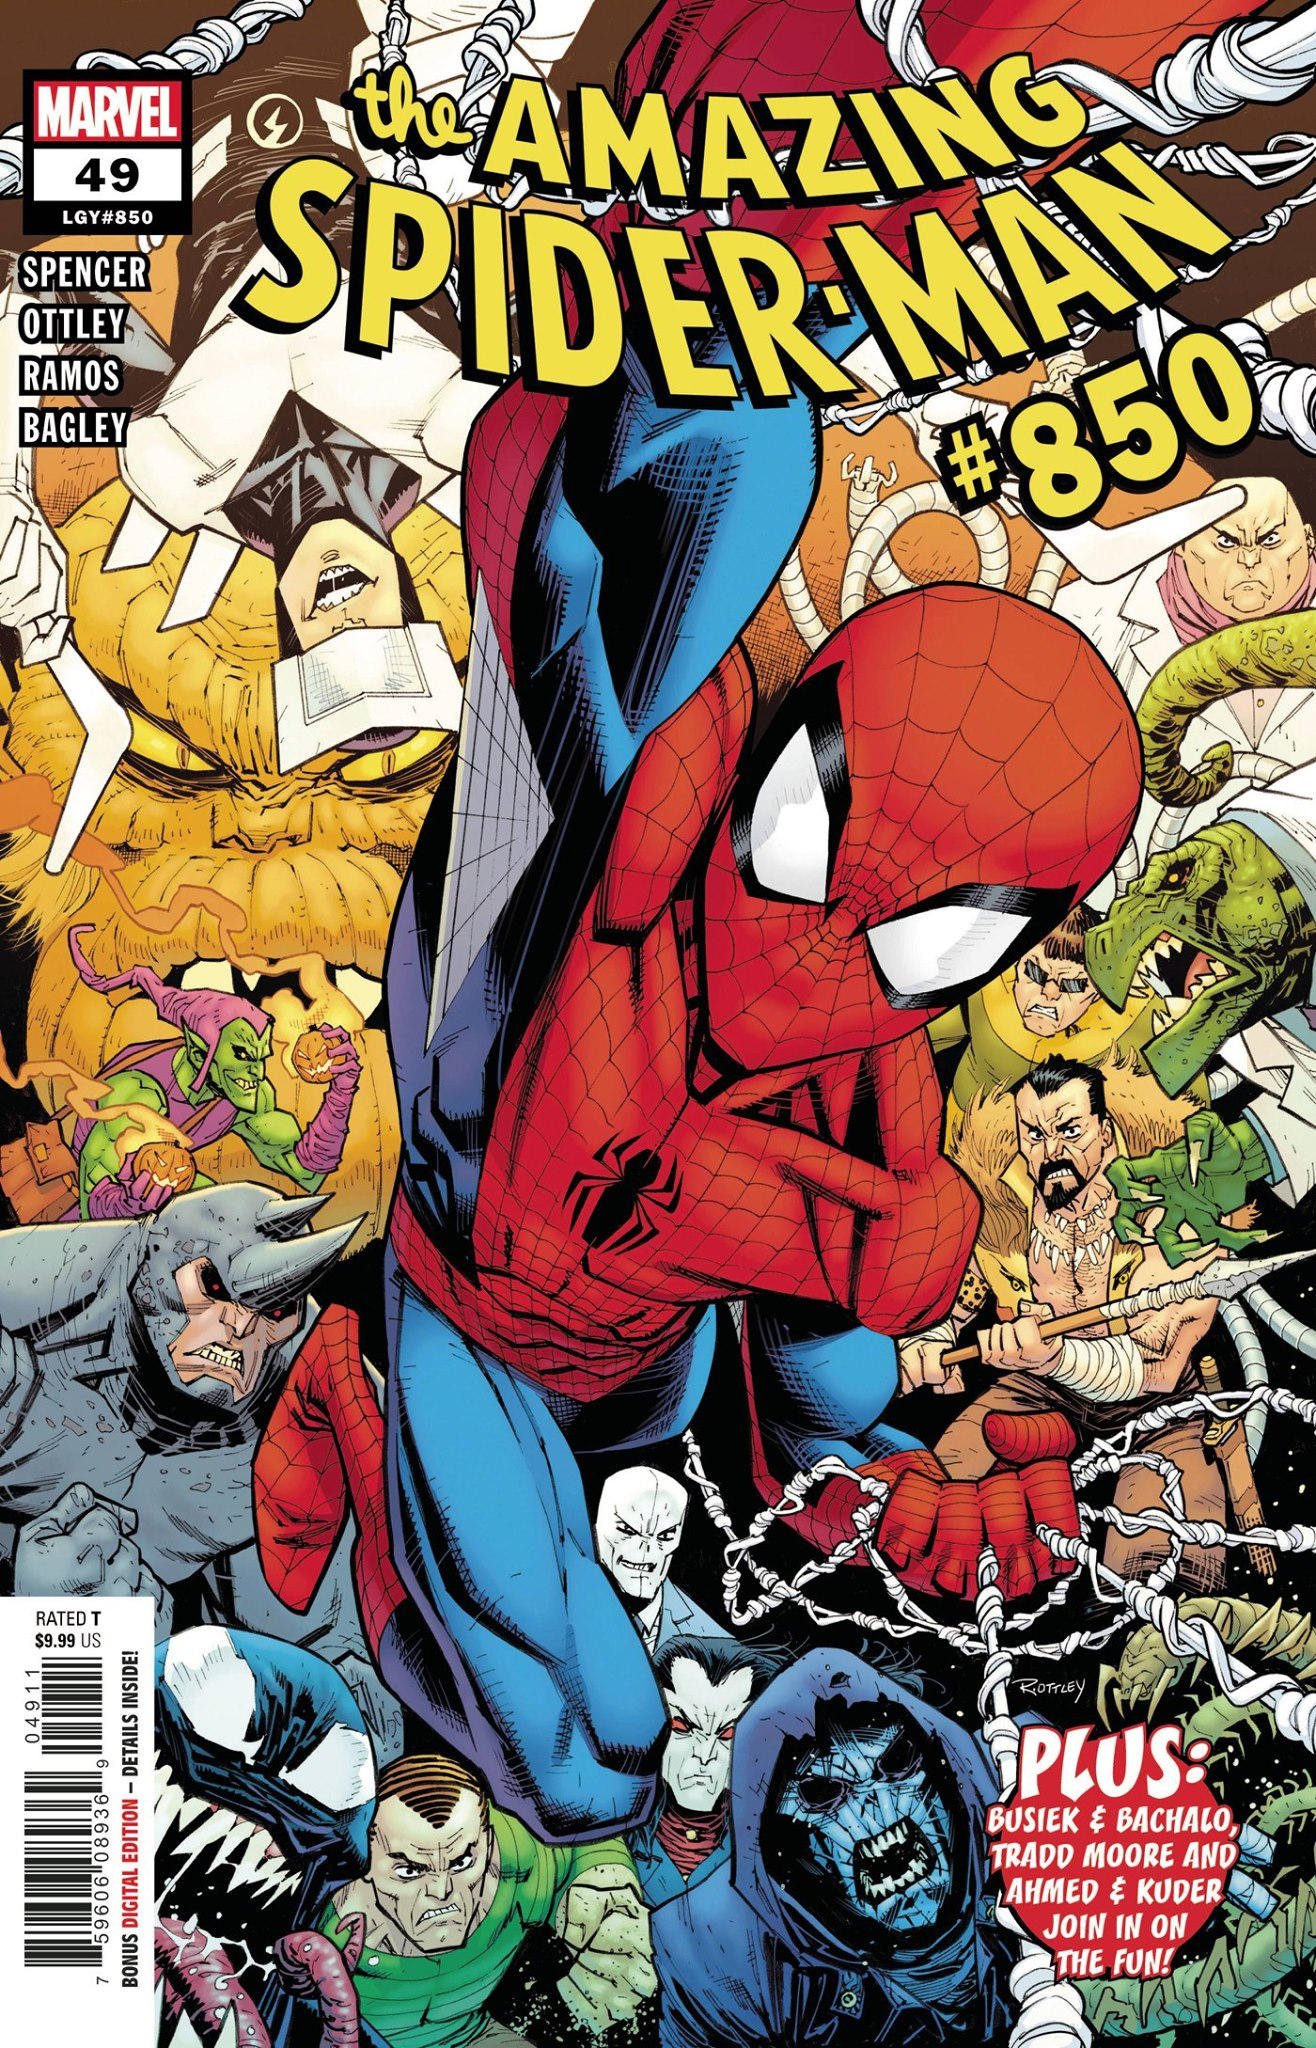 Amazing Spider-Man #49 (#850)